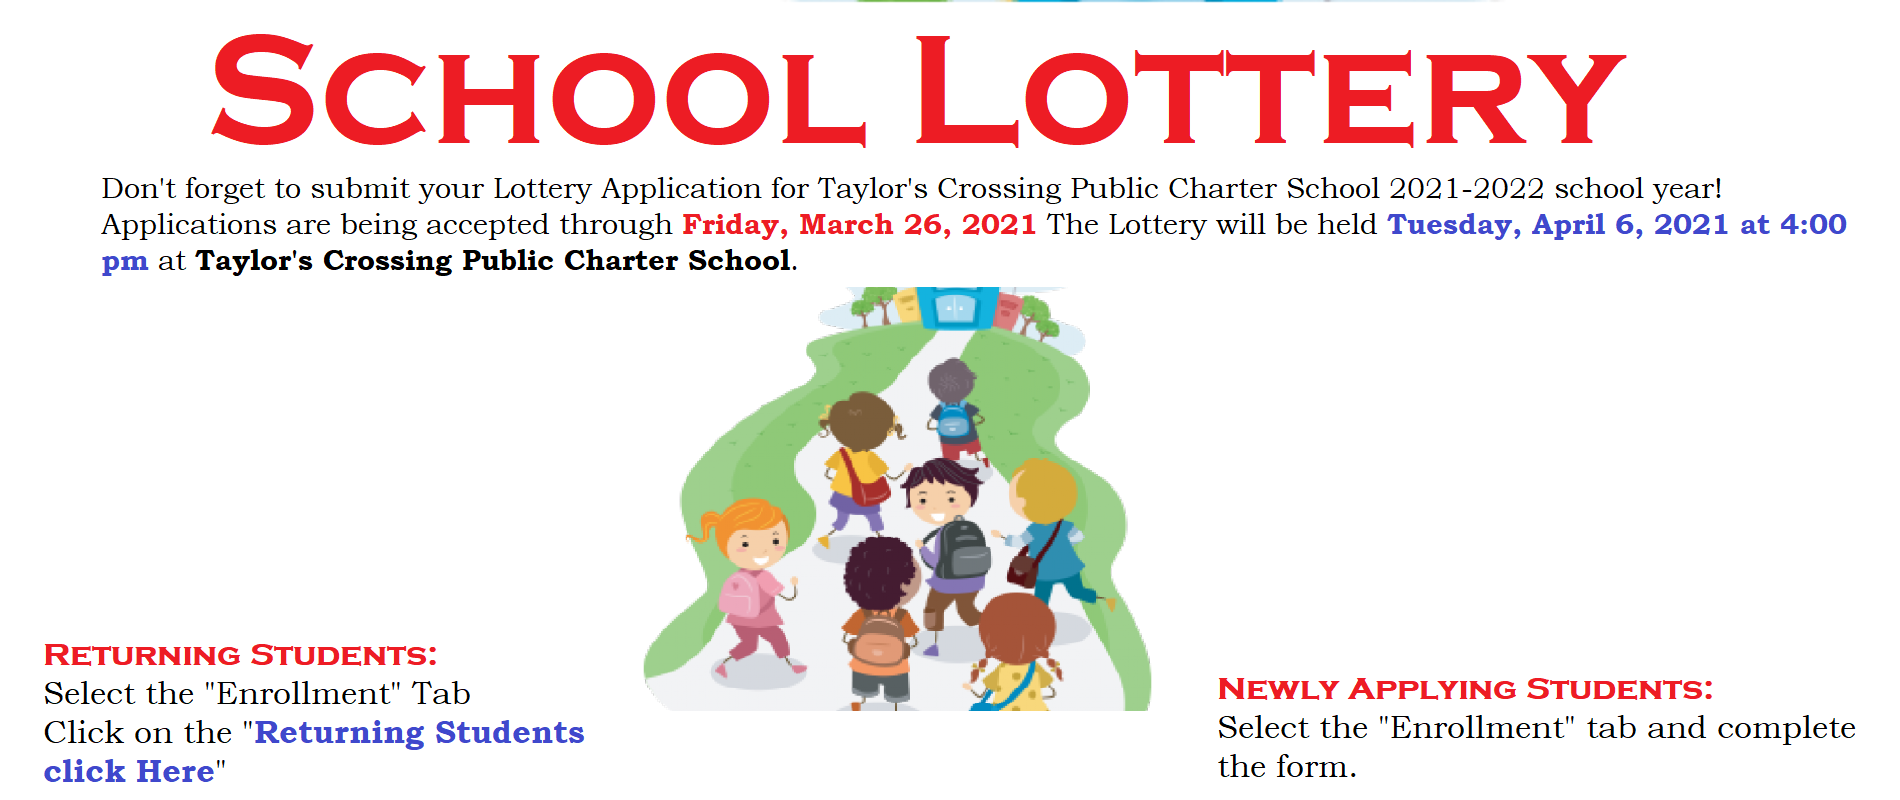 School Lottery Inforamtion